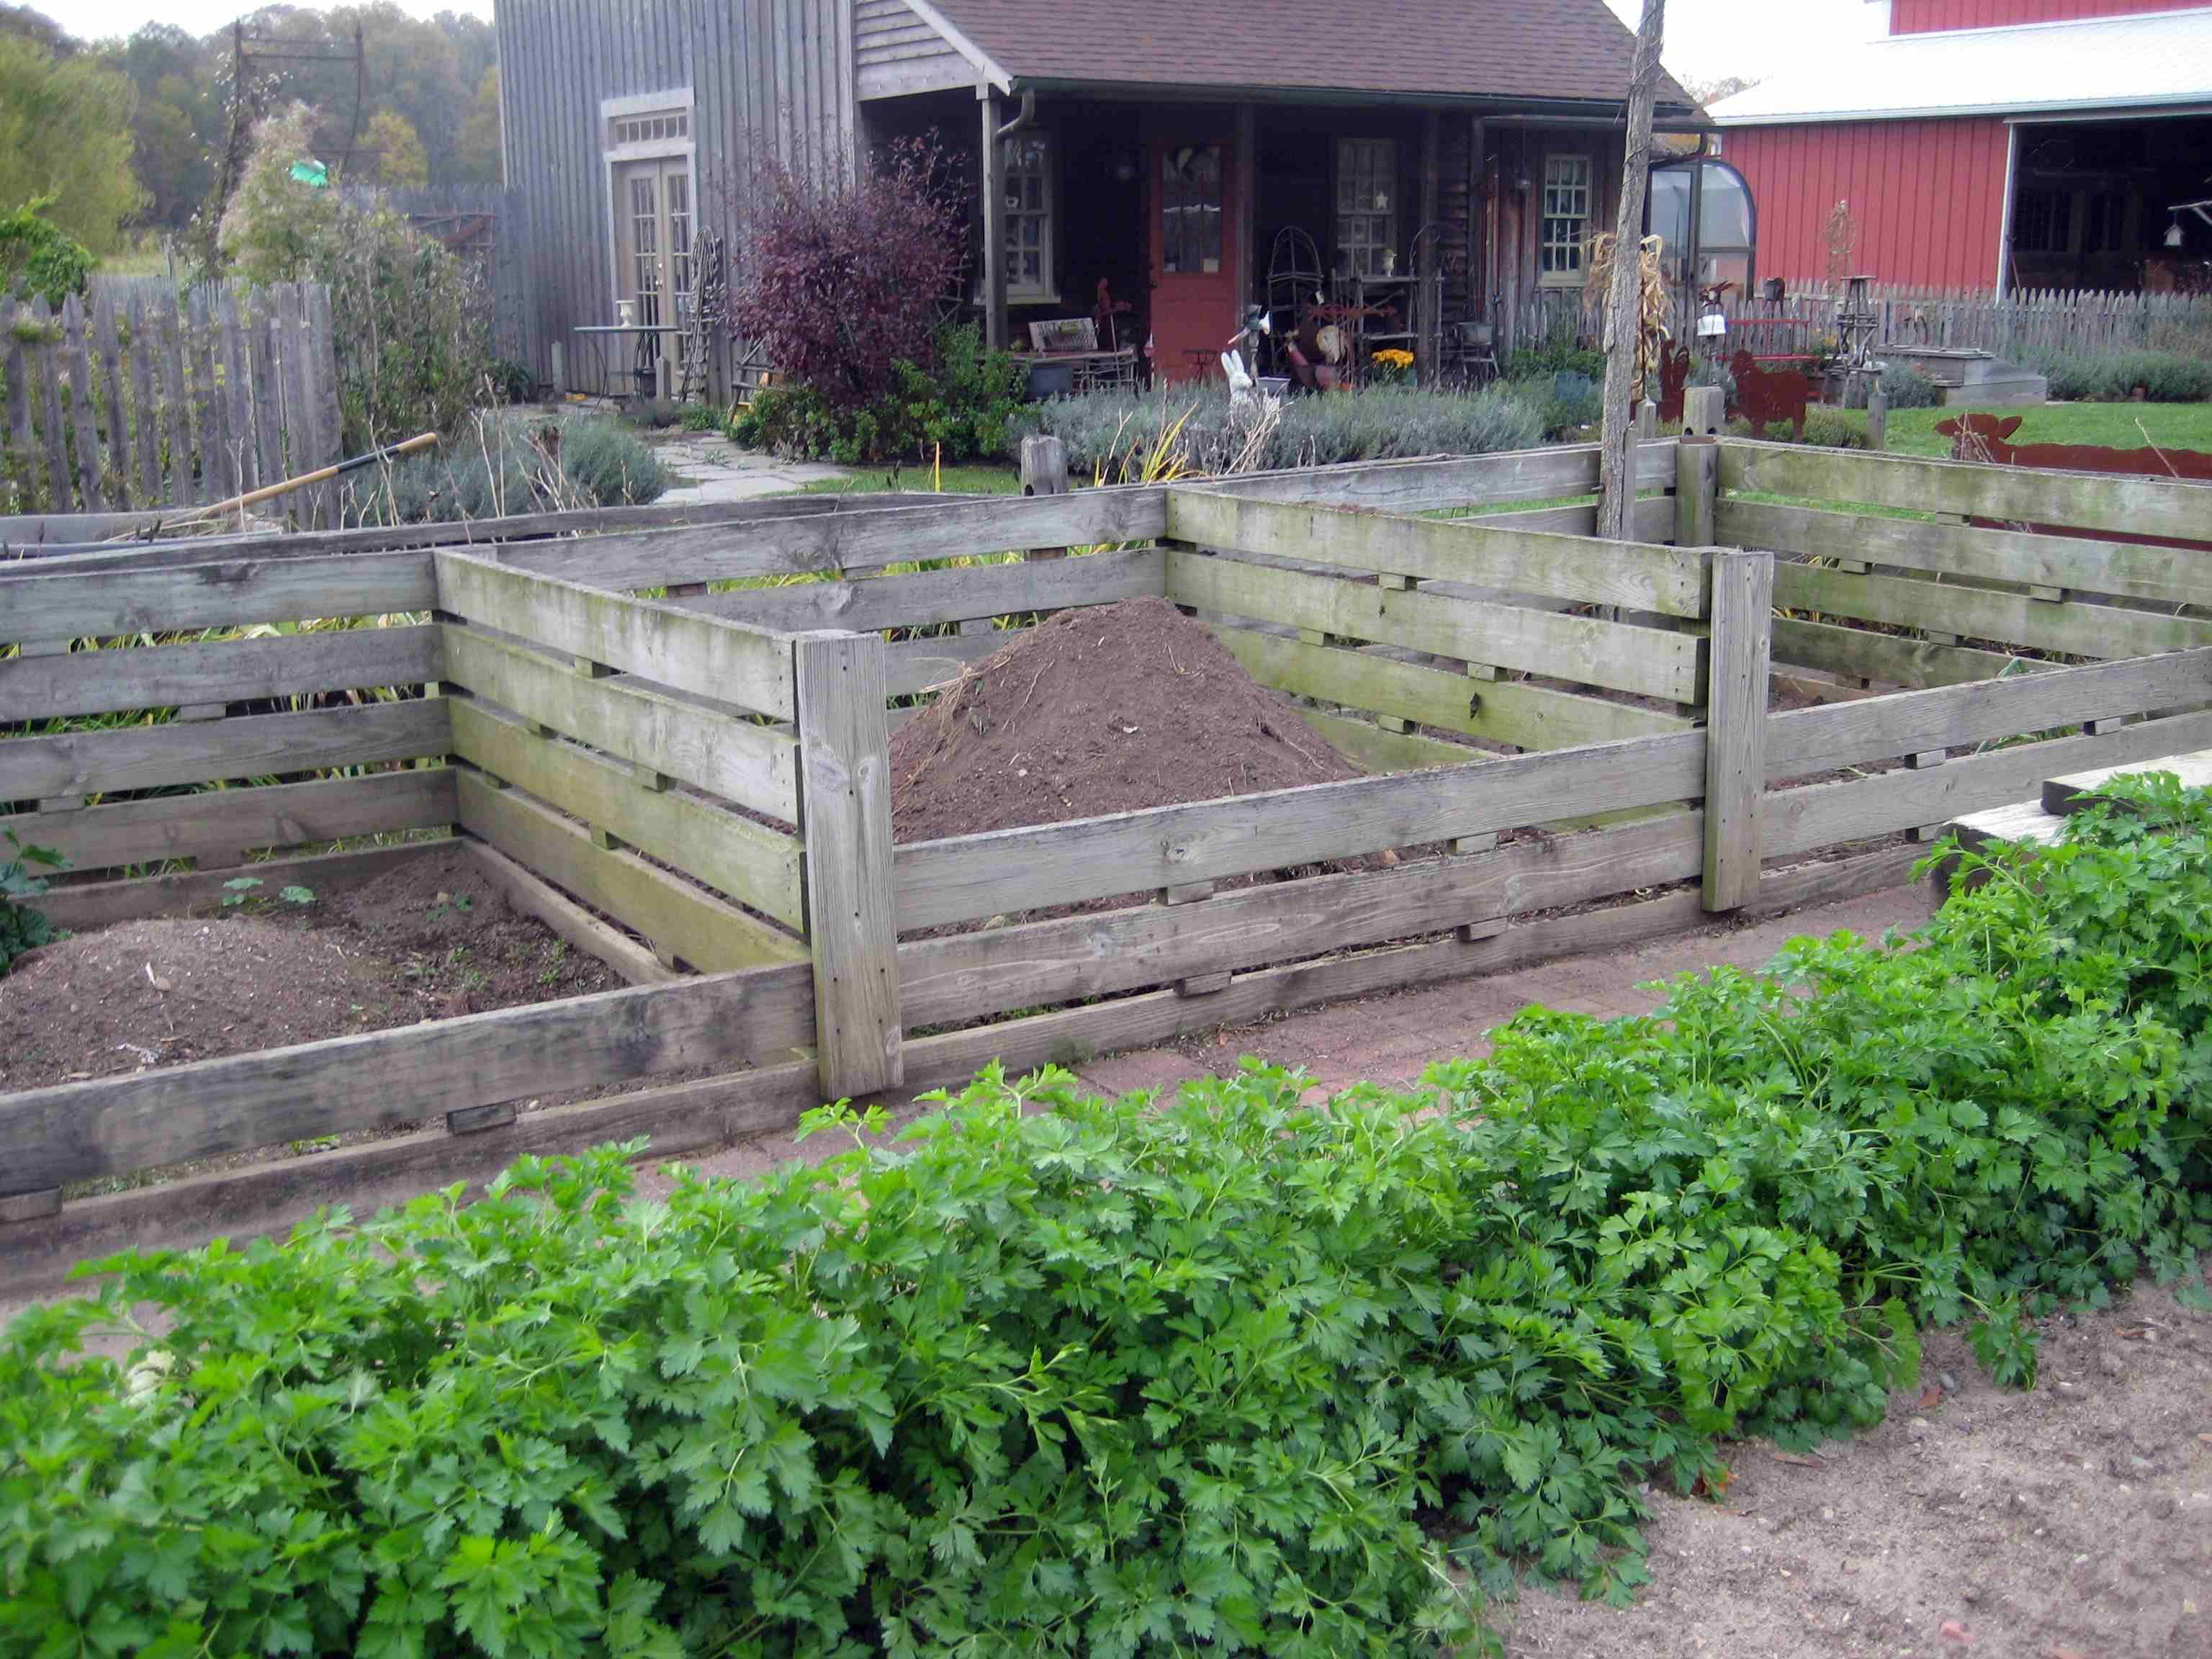 17 Best 1000 images about Composting on Pinterest Gardens Diy